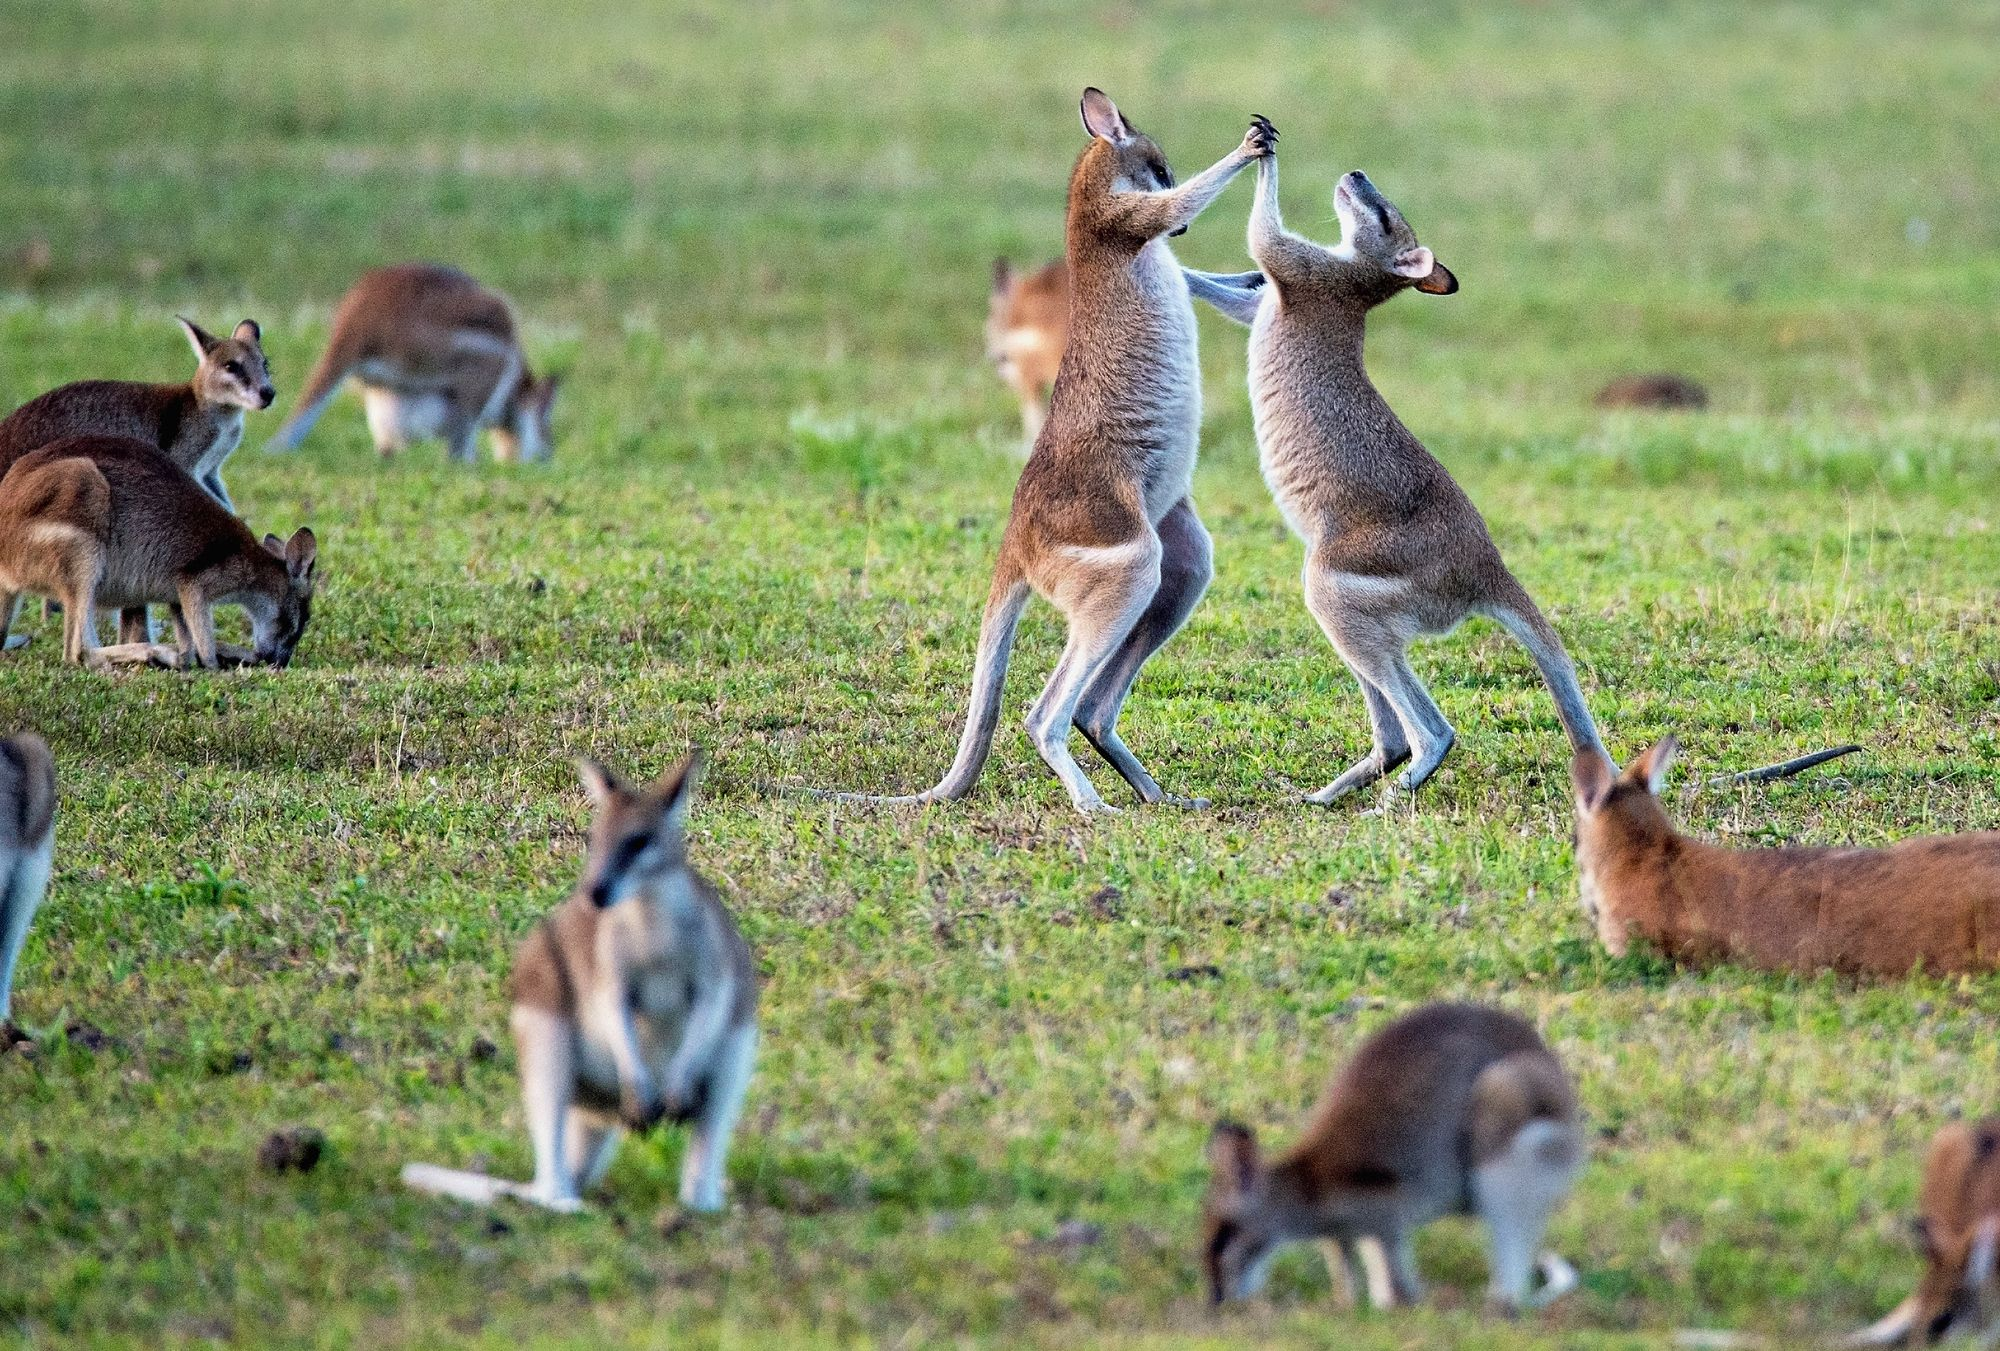 5 Unexpected Things To Do In Australia Pets, Australia